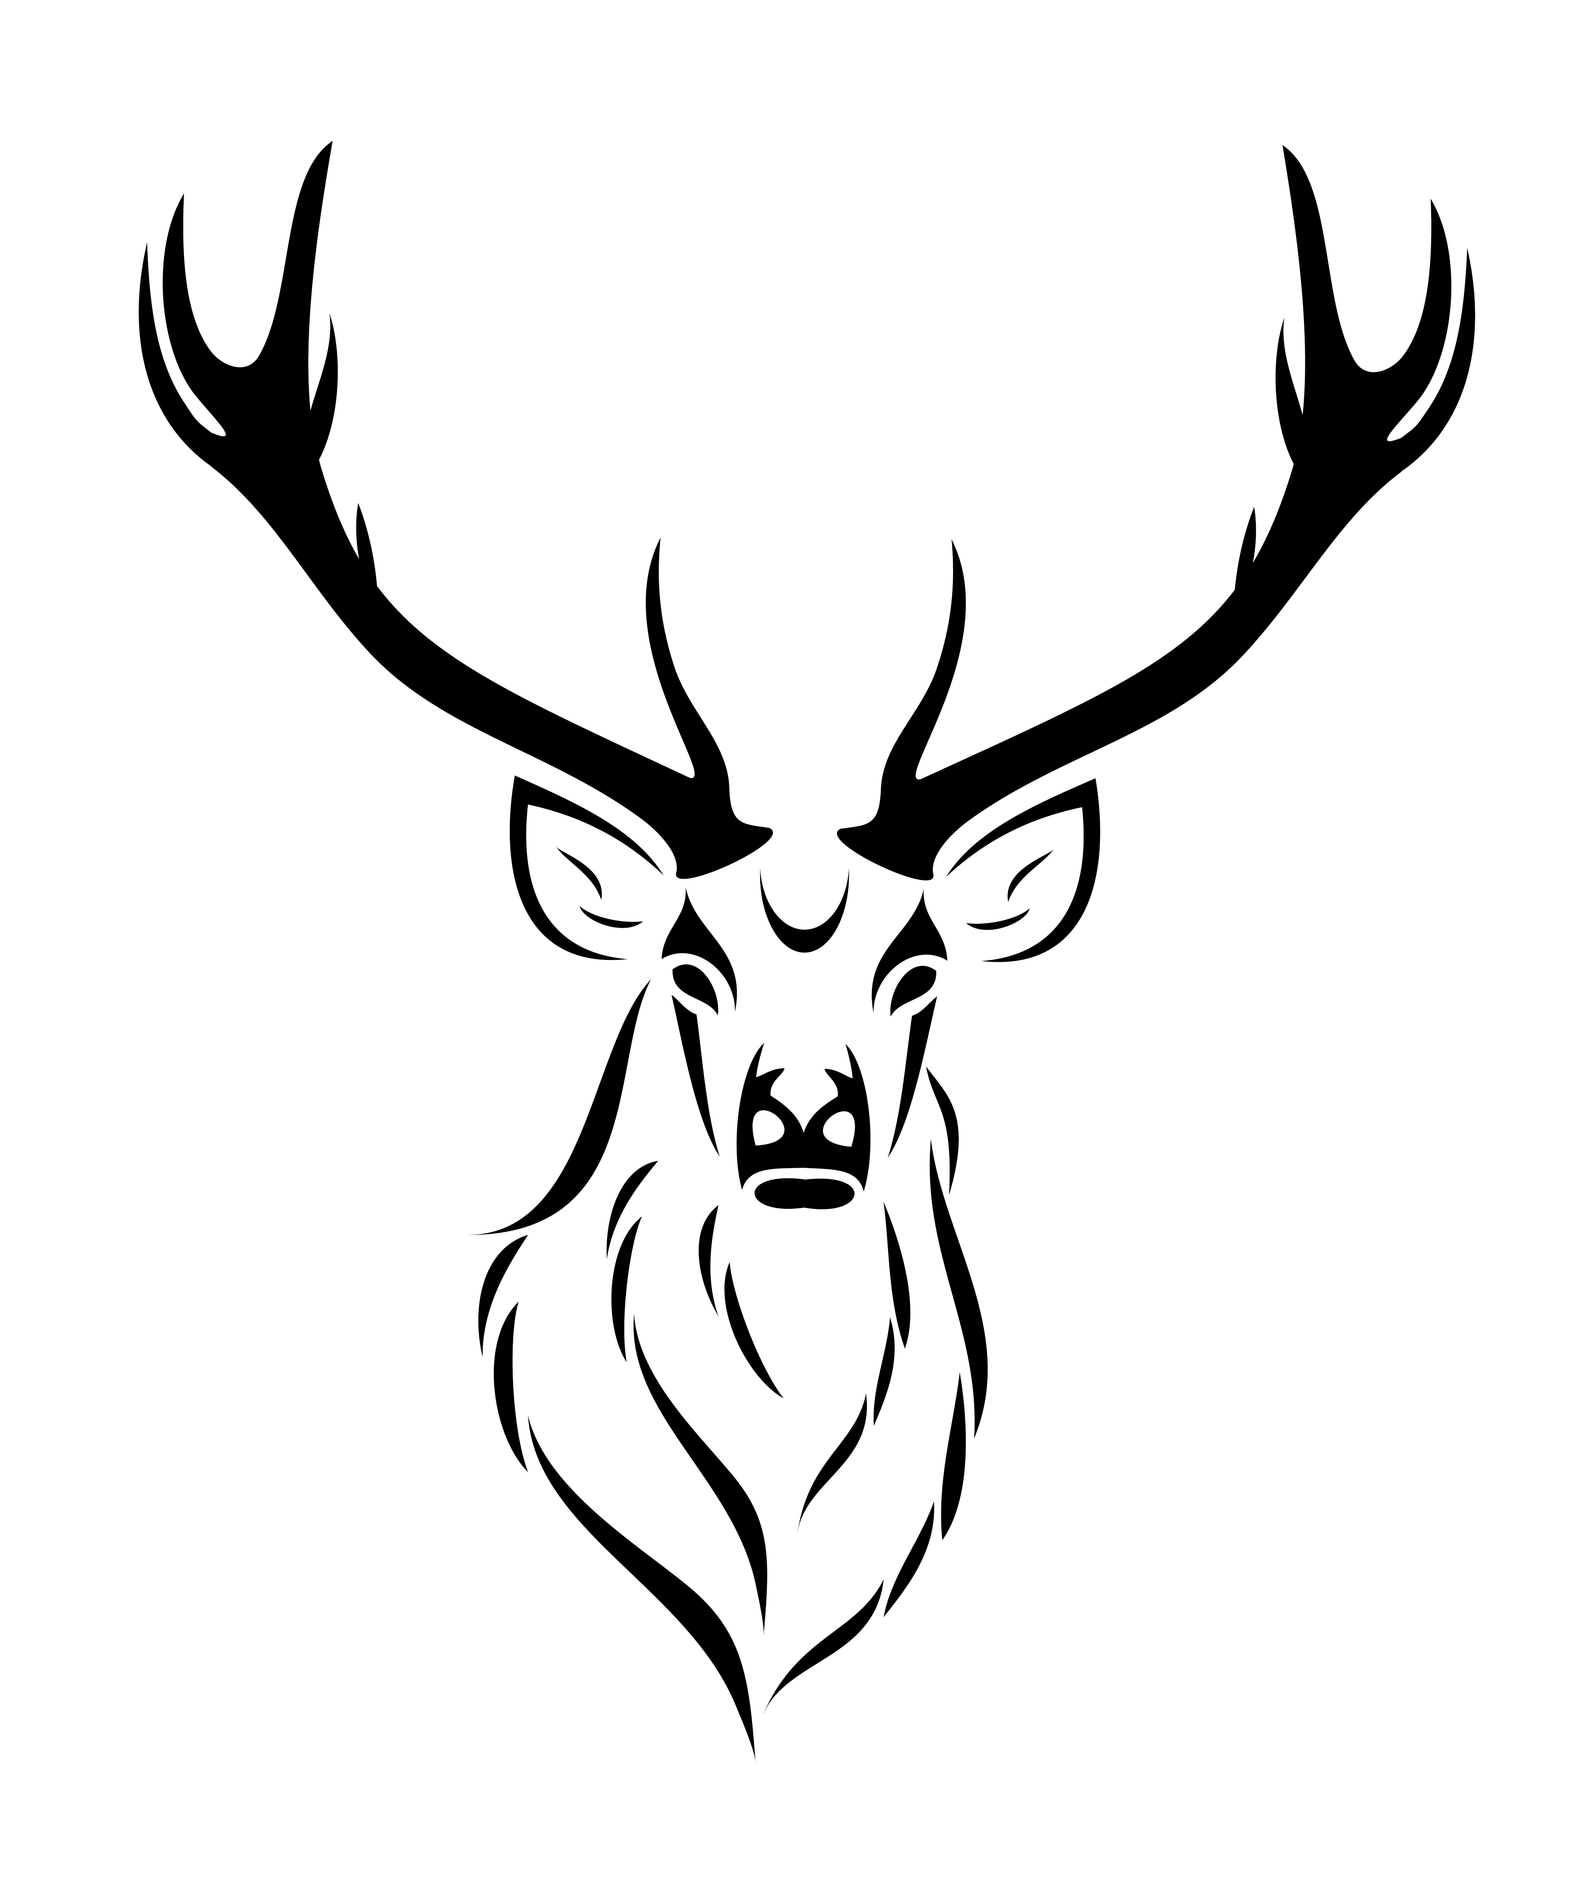 15 nice deer tattoo design ideas rh askideas com Deer Antler Tattoos for Men Deer Skull Tattoos